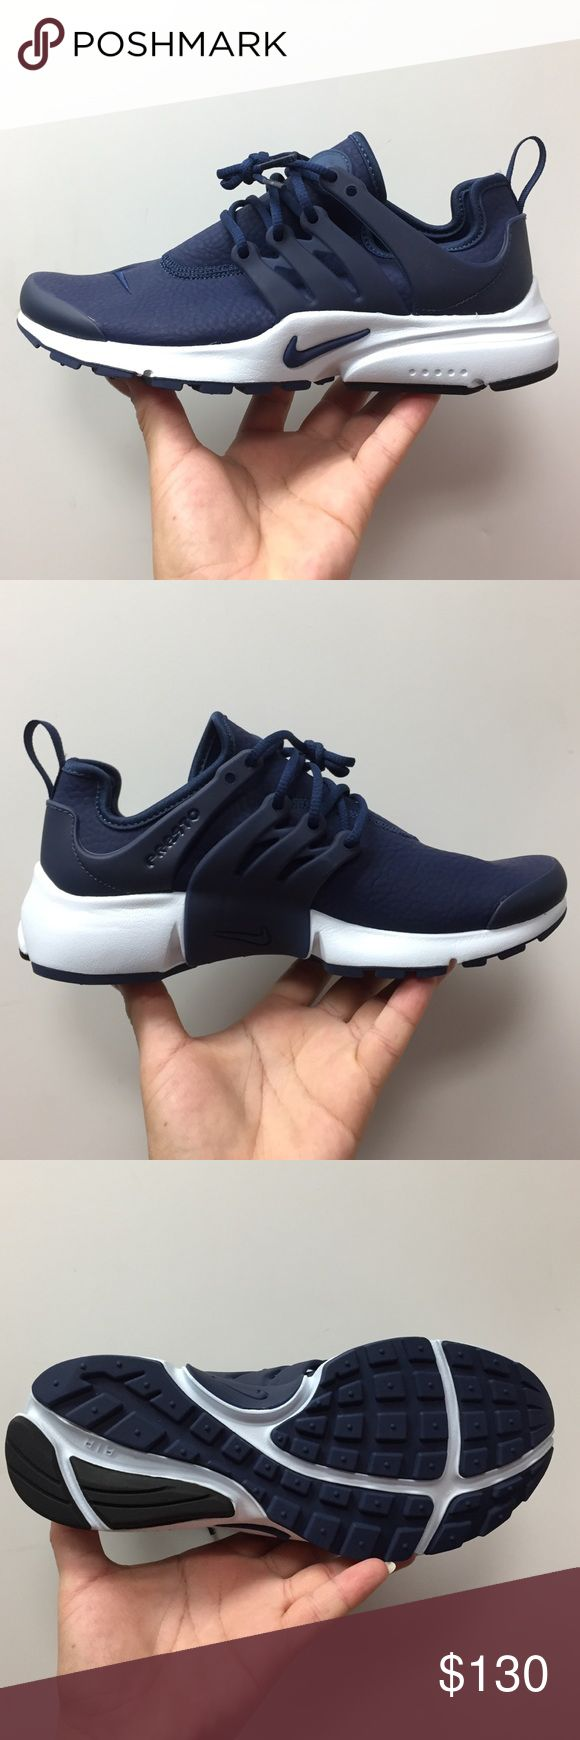 Home nike wmns air presto flyknit ultra midnight turquoise olive - Womens Air Presto Prm New With Box Midnight Navy Nike Shoes Sneakers